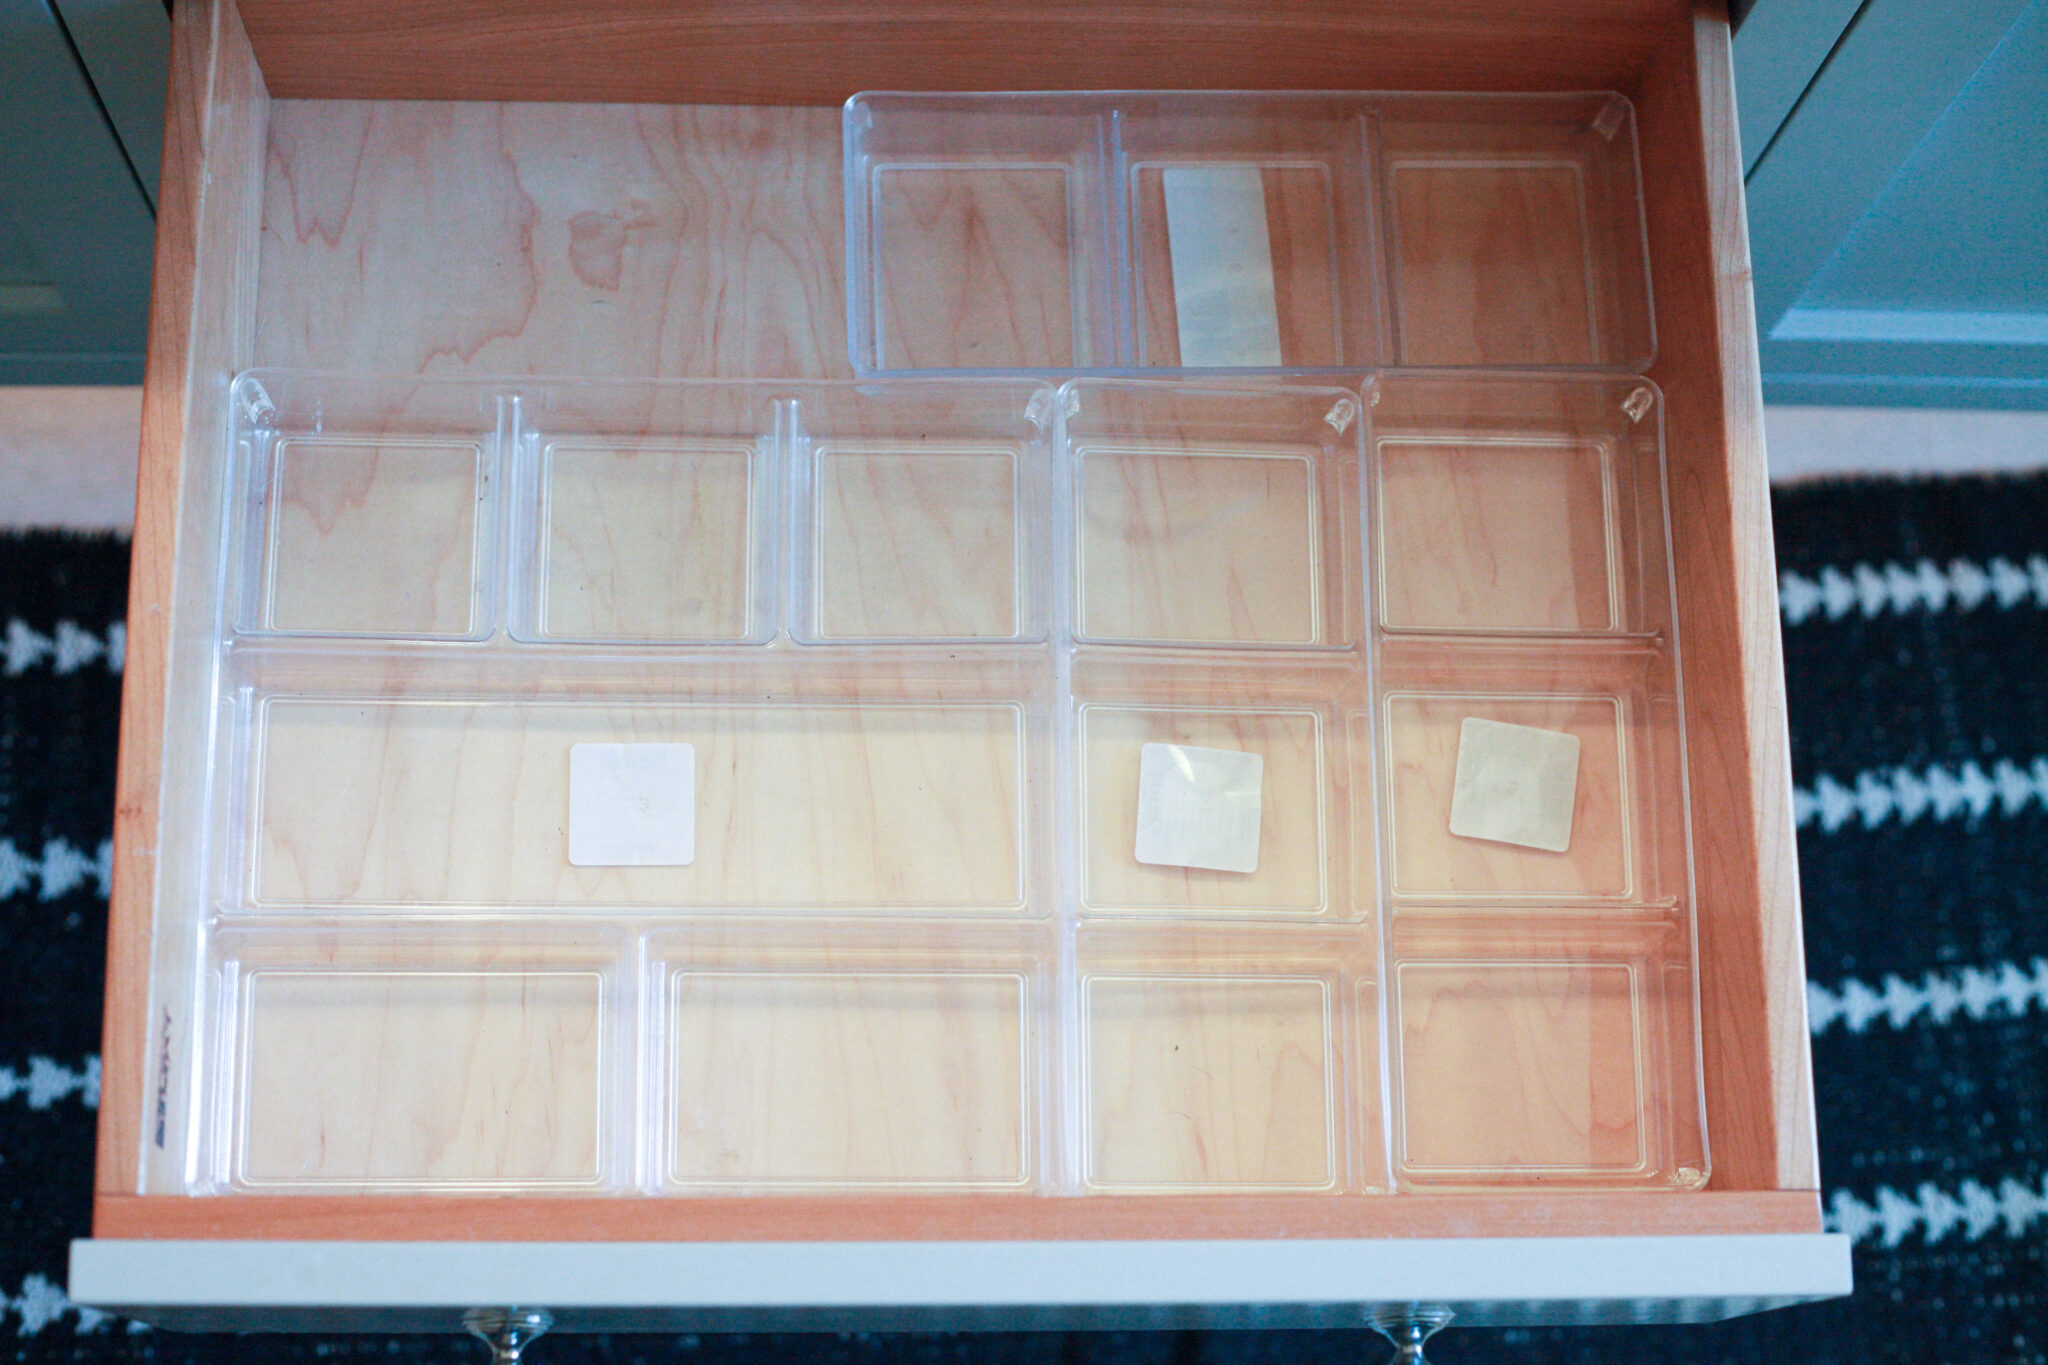 How to Organize Your Makeup Drawer - trays inserted into makeup drawer